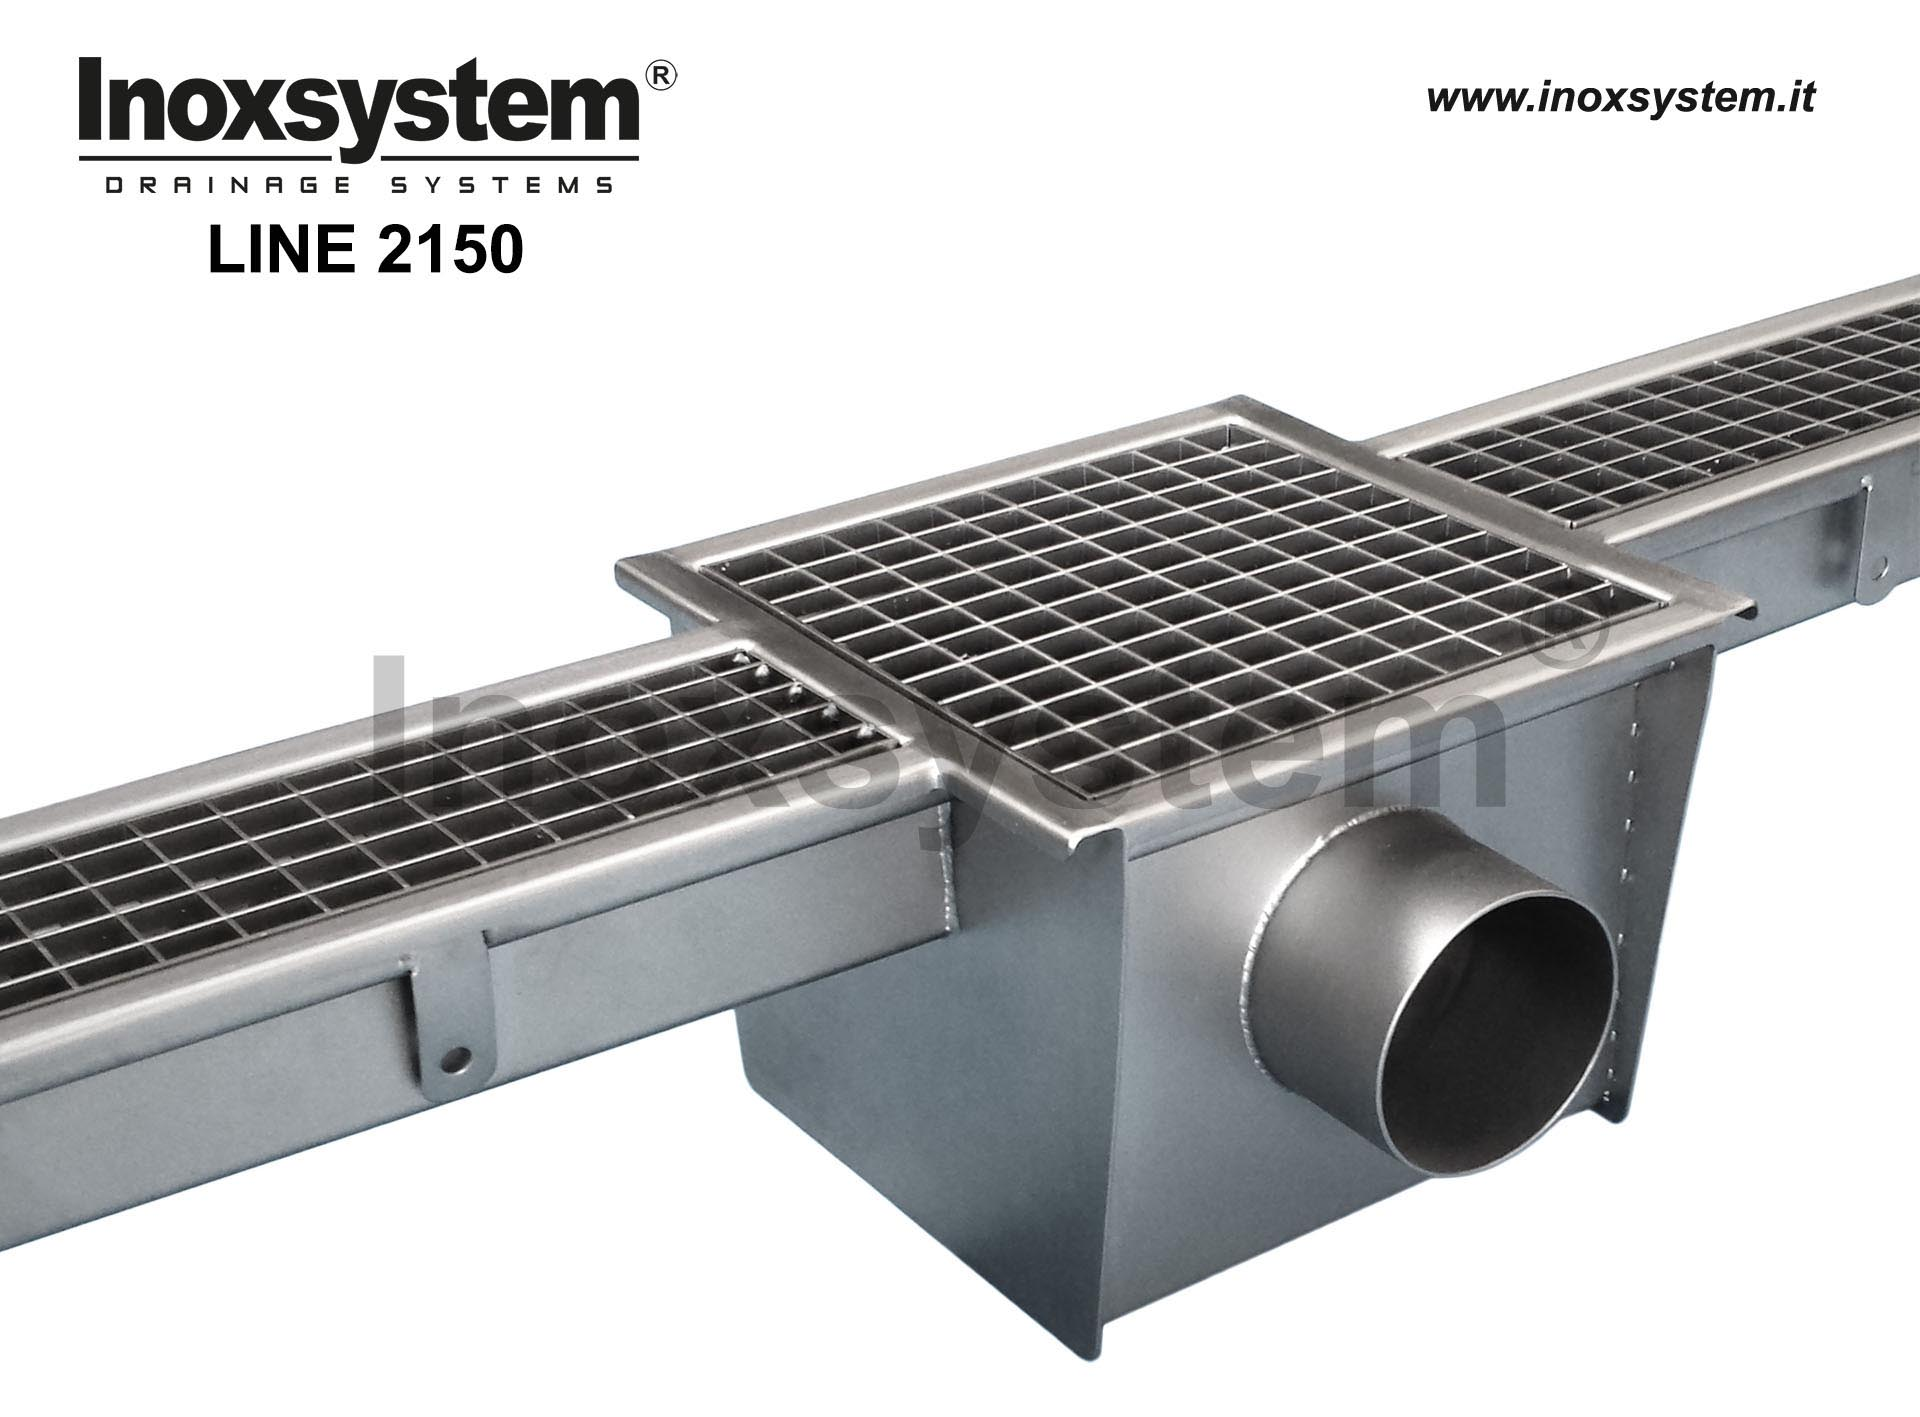 Standard stainless steel grating channel with siphoned outlet and grating cover, outlet pipe Ø 110 mm and removable filter basket LINE 2150